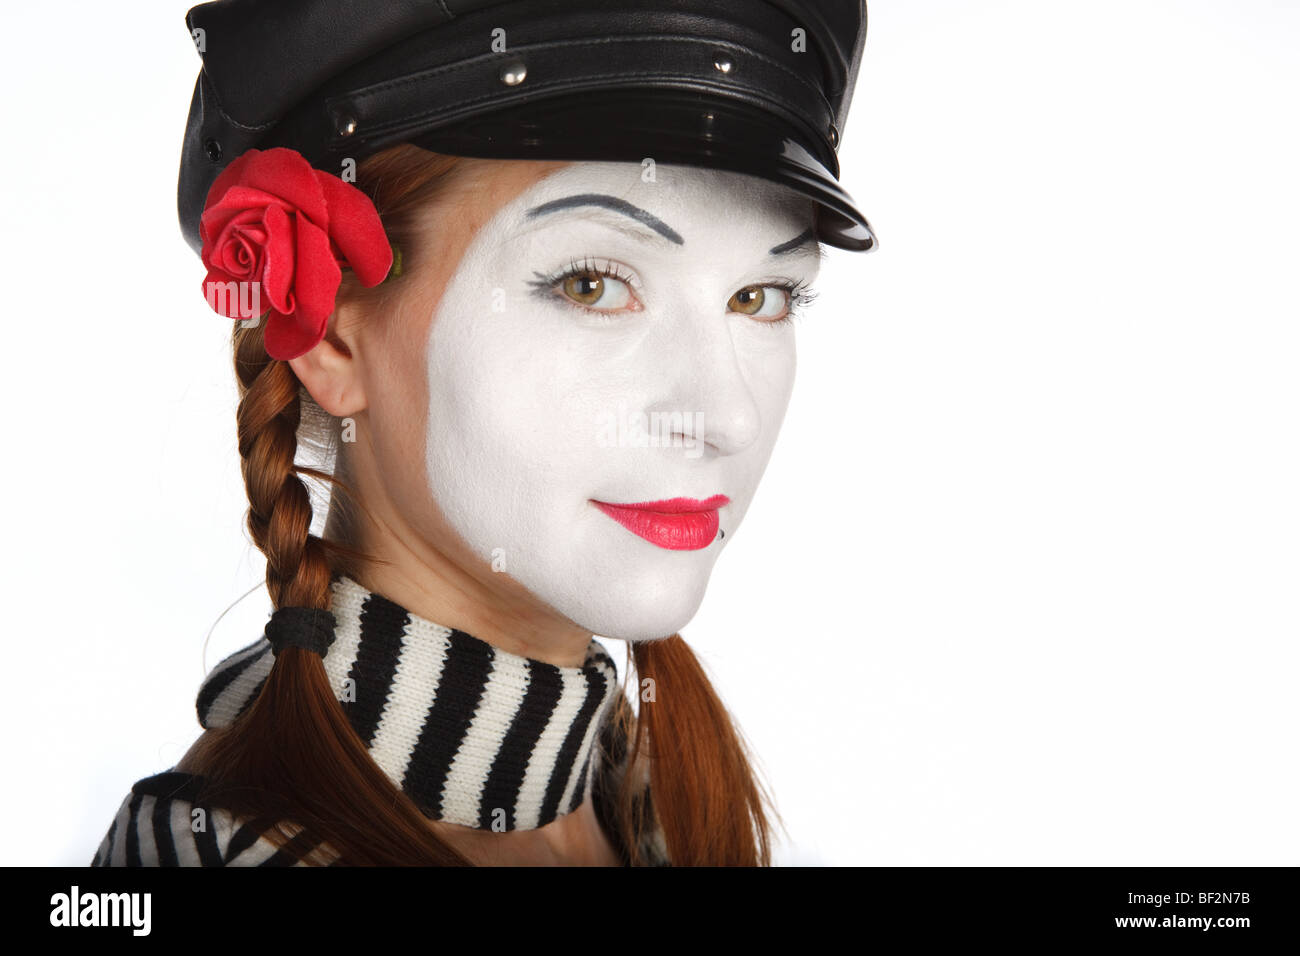 Portrait of a young lady dressed up as a mime, isolated over white background - Stock Image